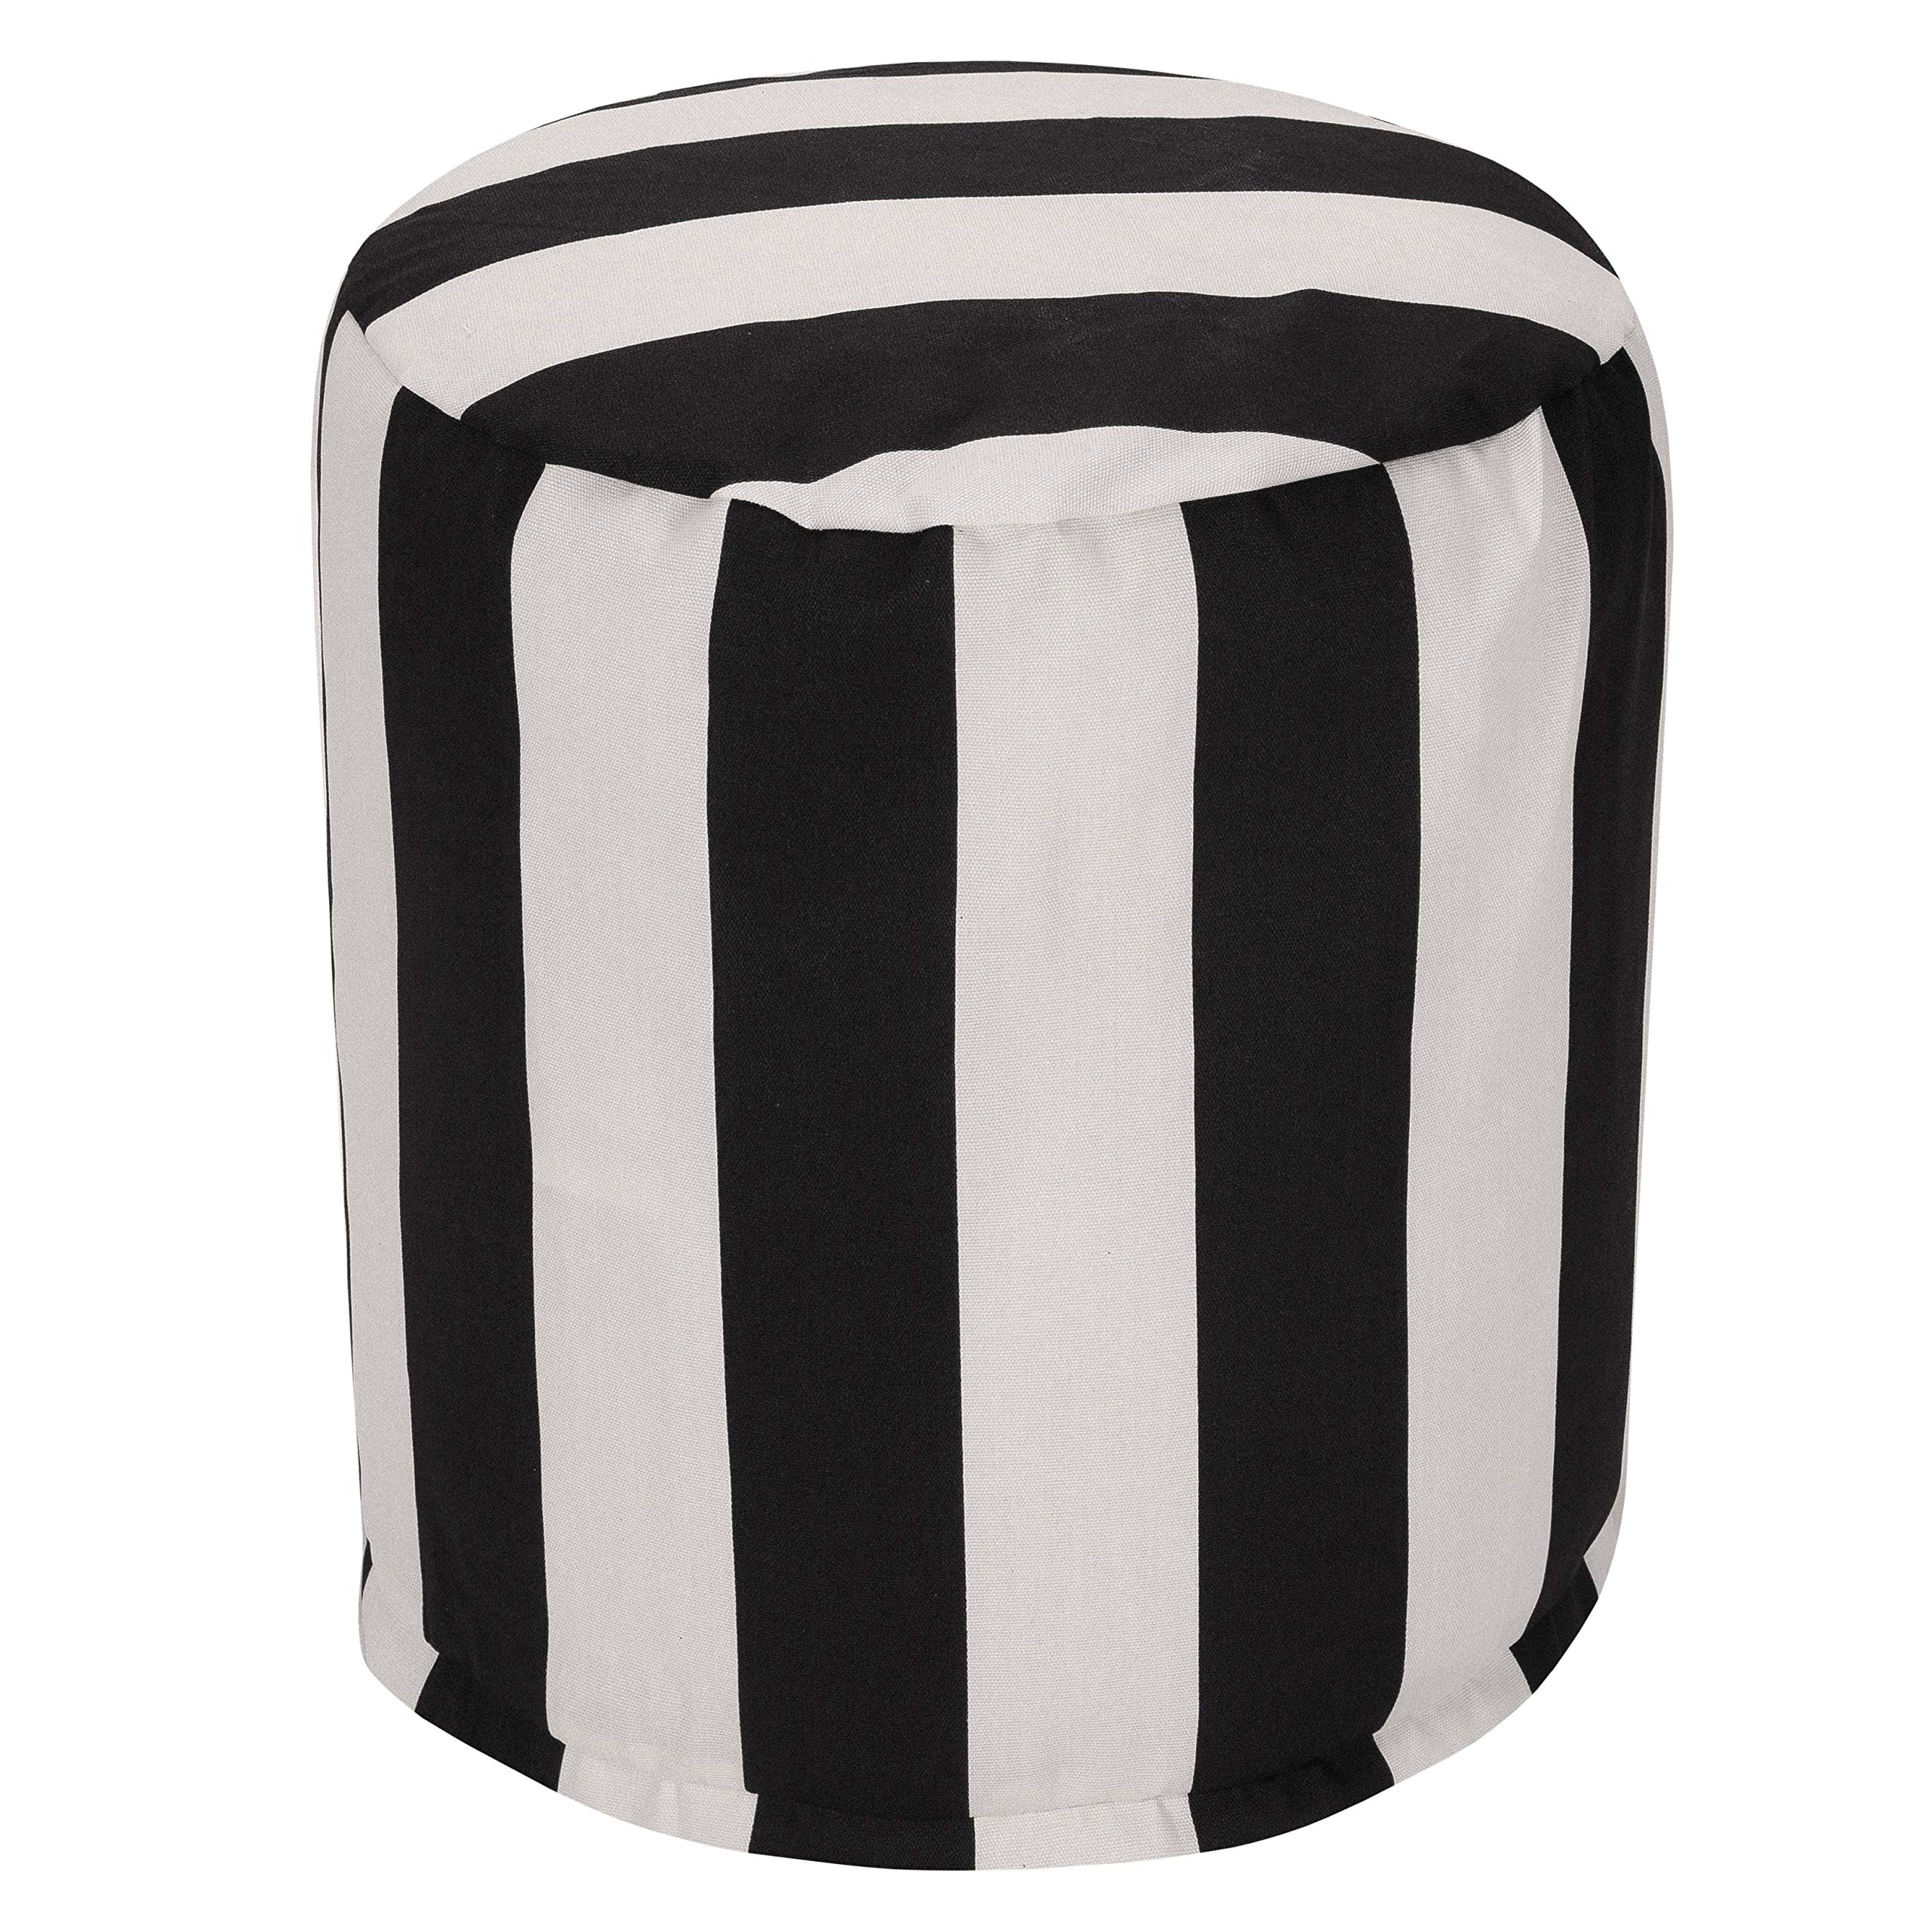 Majestic Home Goods Black Vertical Stripe Indoor/Outdoor Bean Bag Ottoman Pouf 16'' L x 16'' W x 17'' H